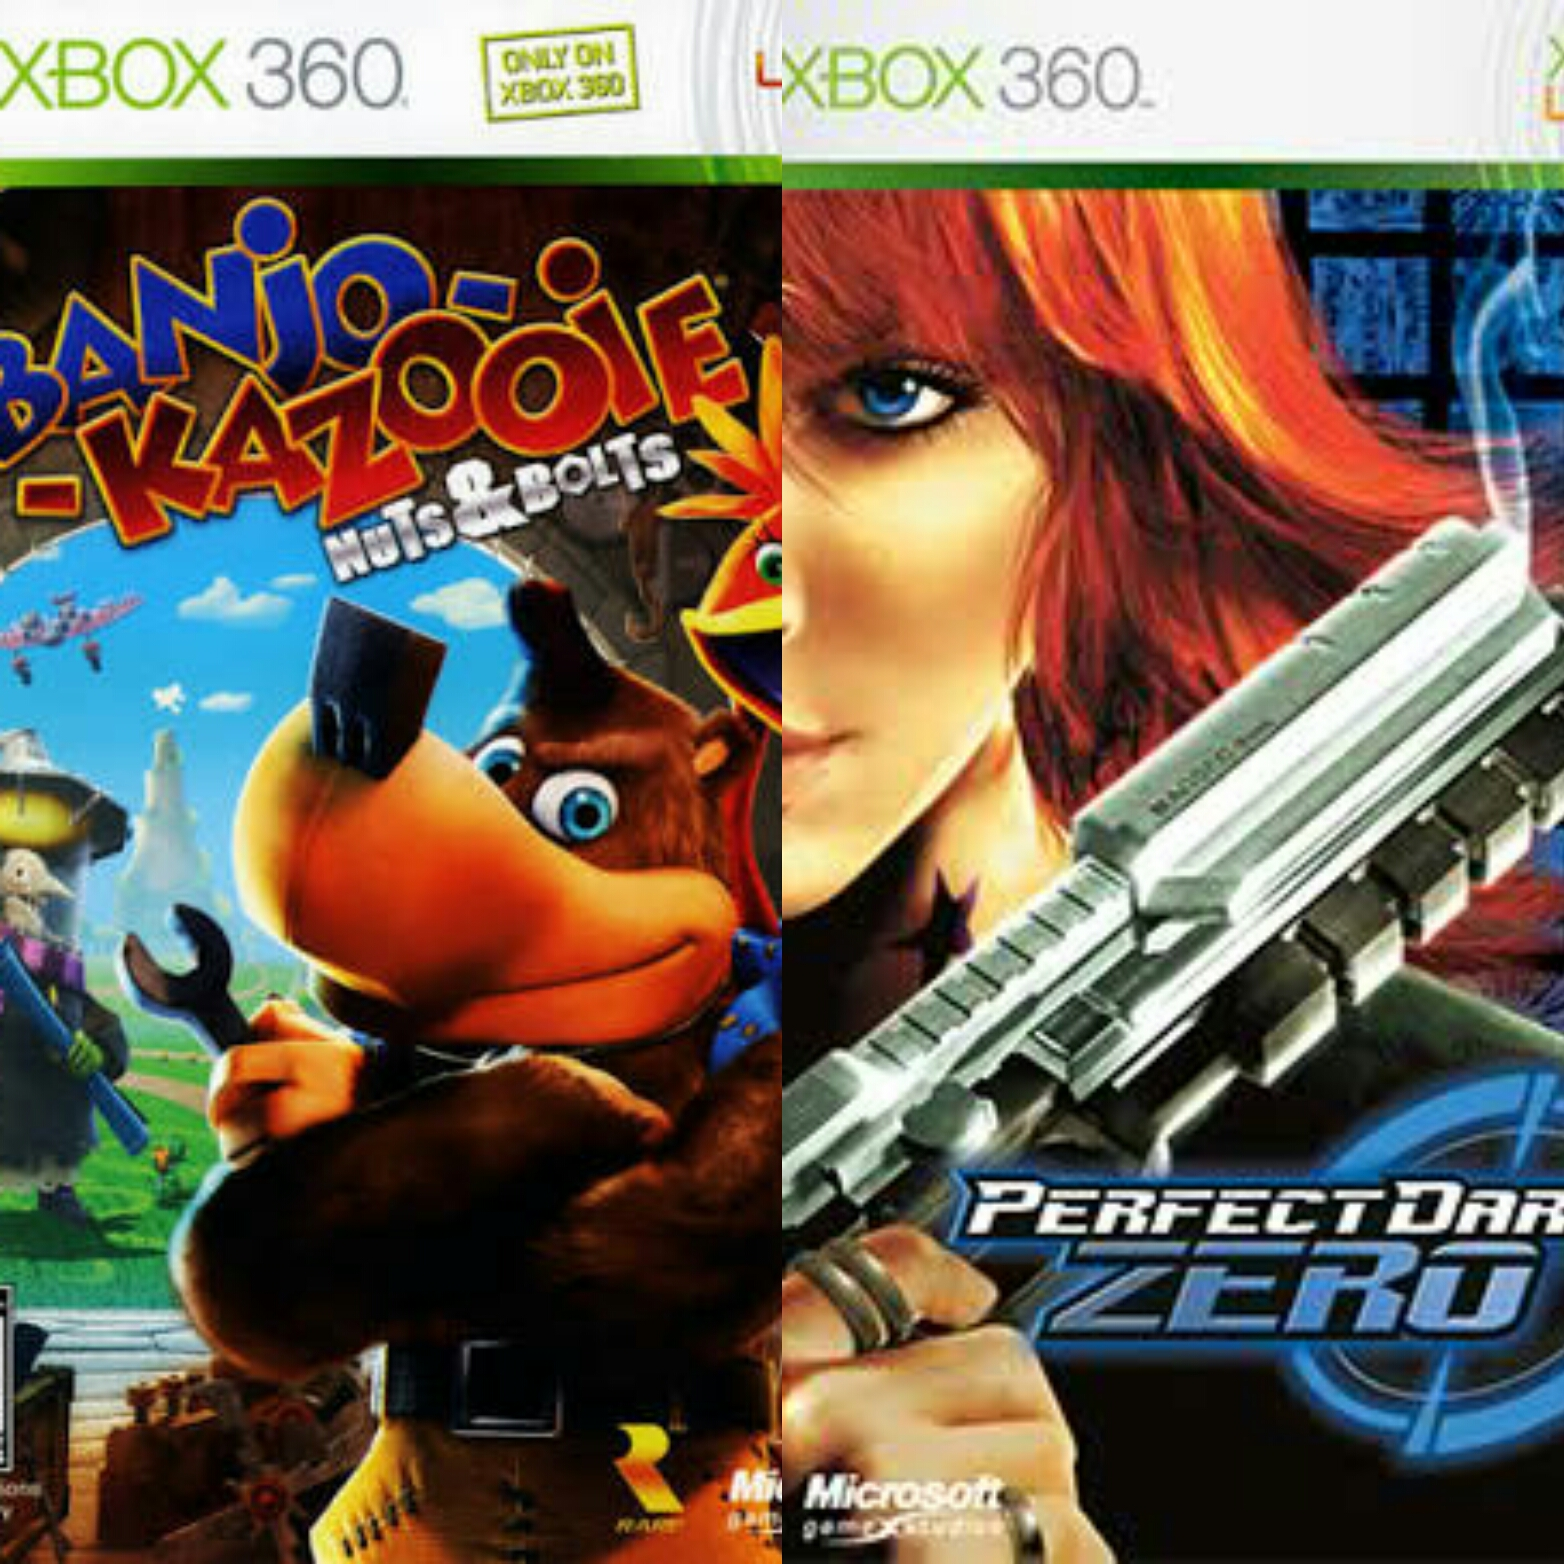 The Cream of the Crap - Perfect Dark Zero and Banjo-Kazooie: Nuts & Bolts (Xbox 360)